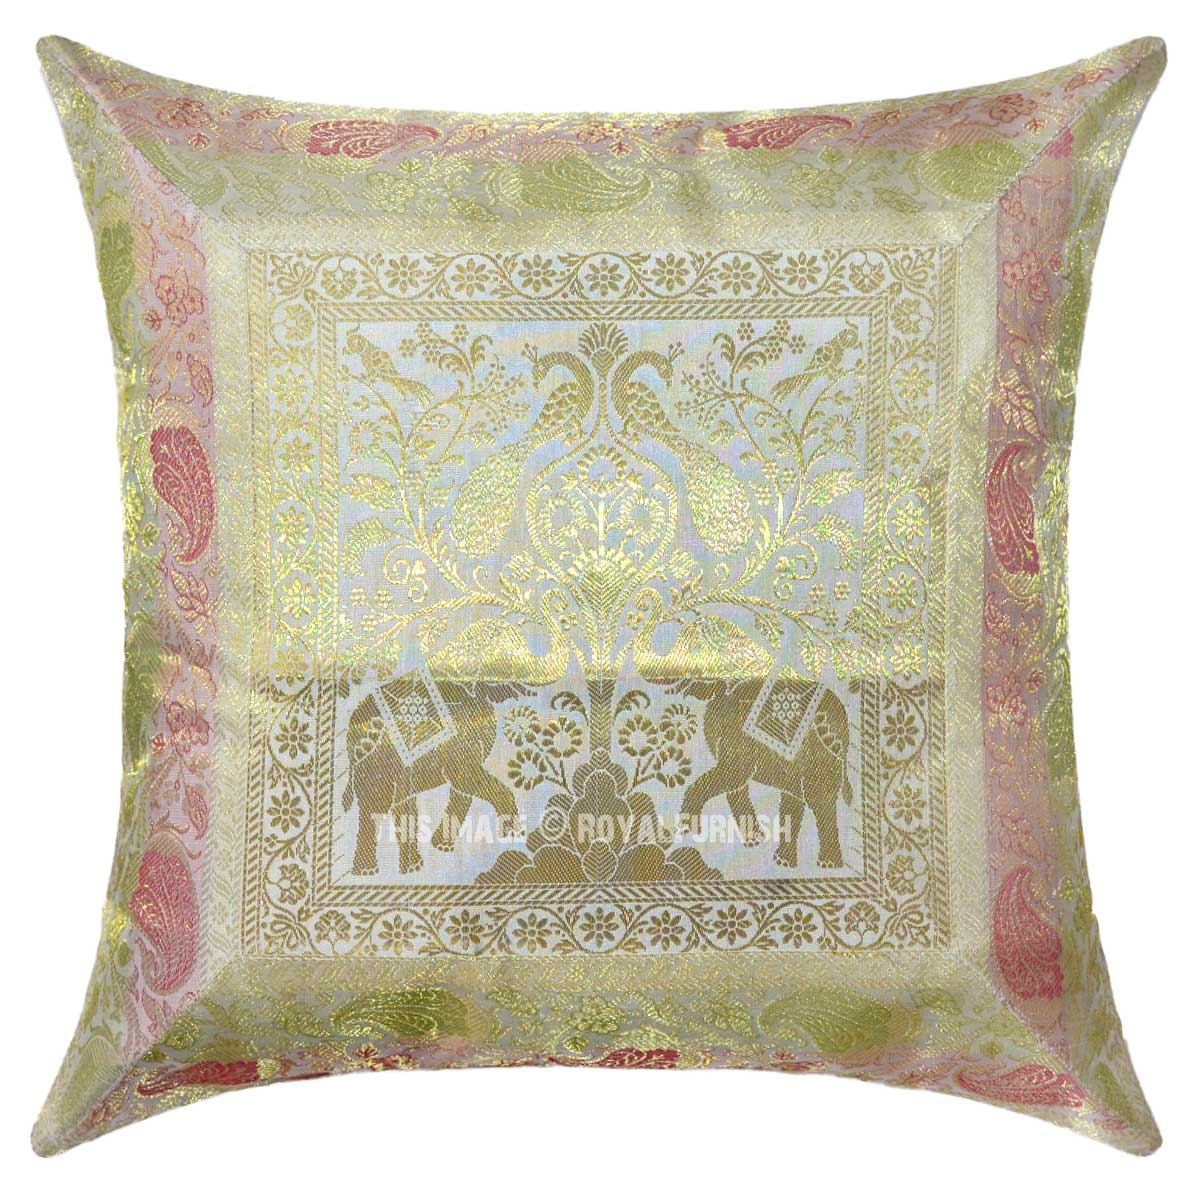 White Elephants And Birds Featuring Decorative Silk Square